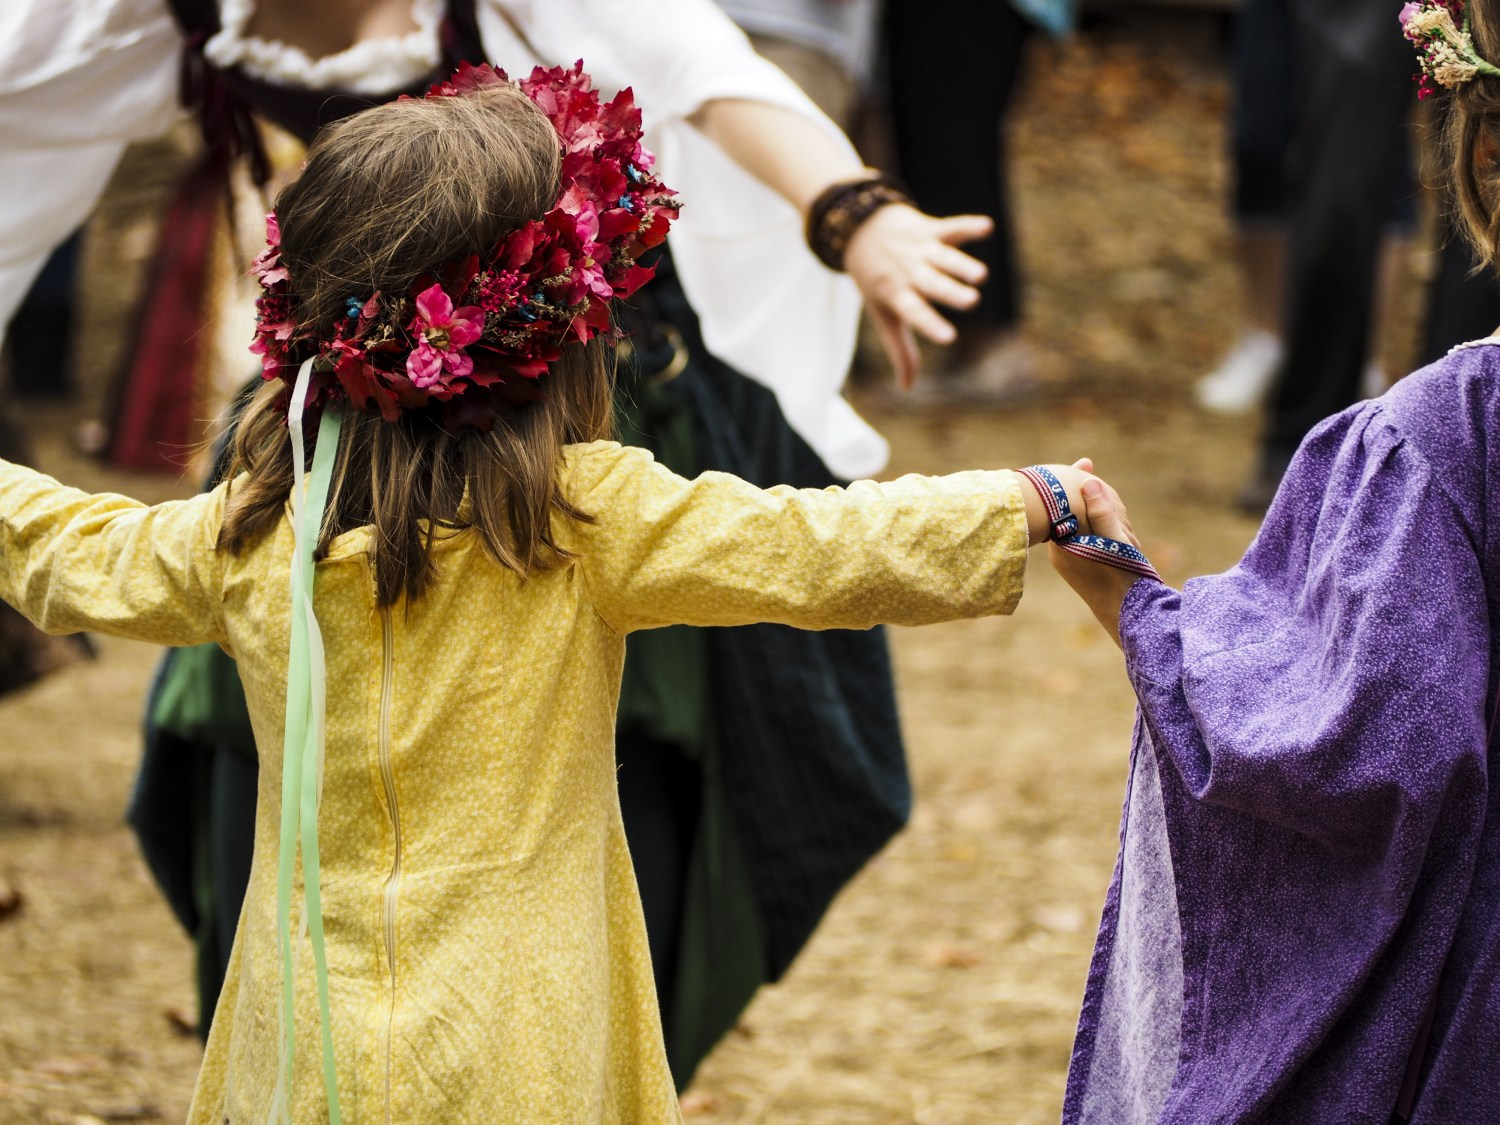 Girl Participating in Maypole Dance at Festival